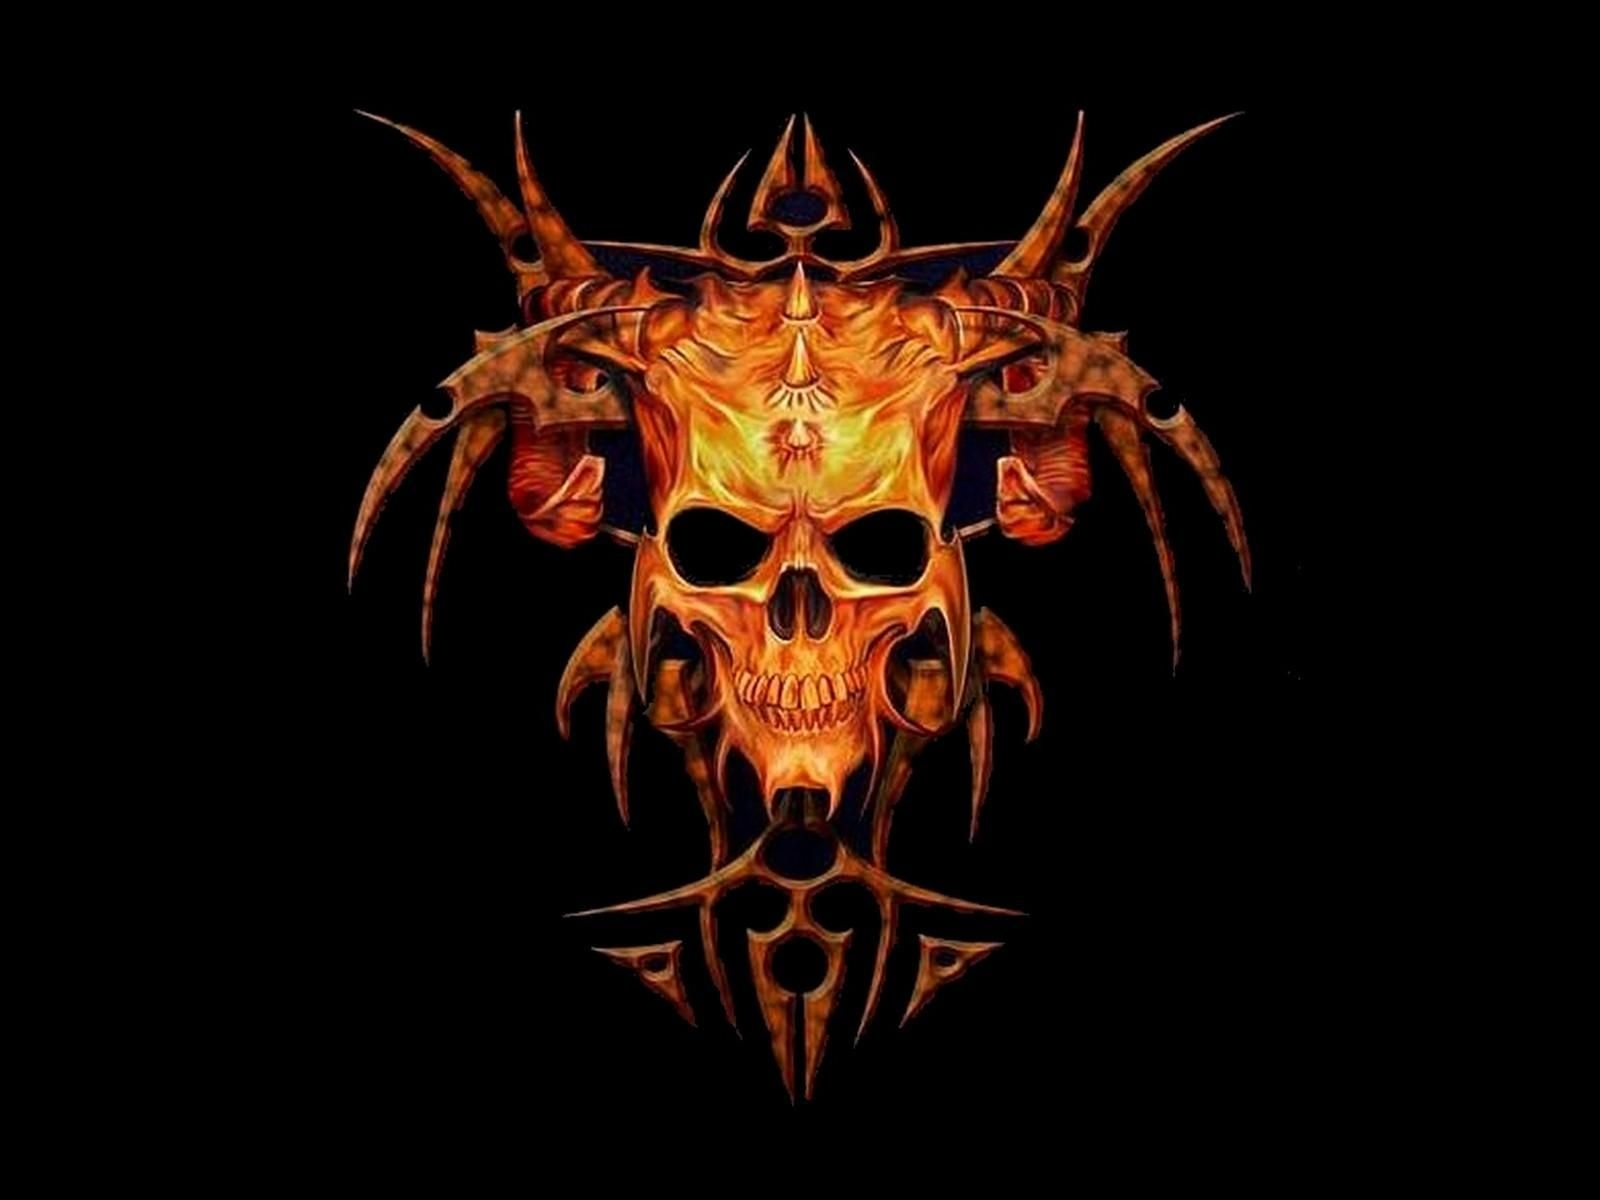 pics of skulls | skull free wallpaper with 1600x1200 resolution